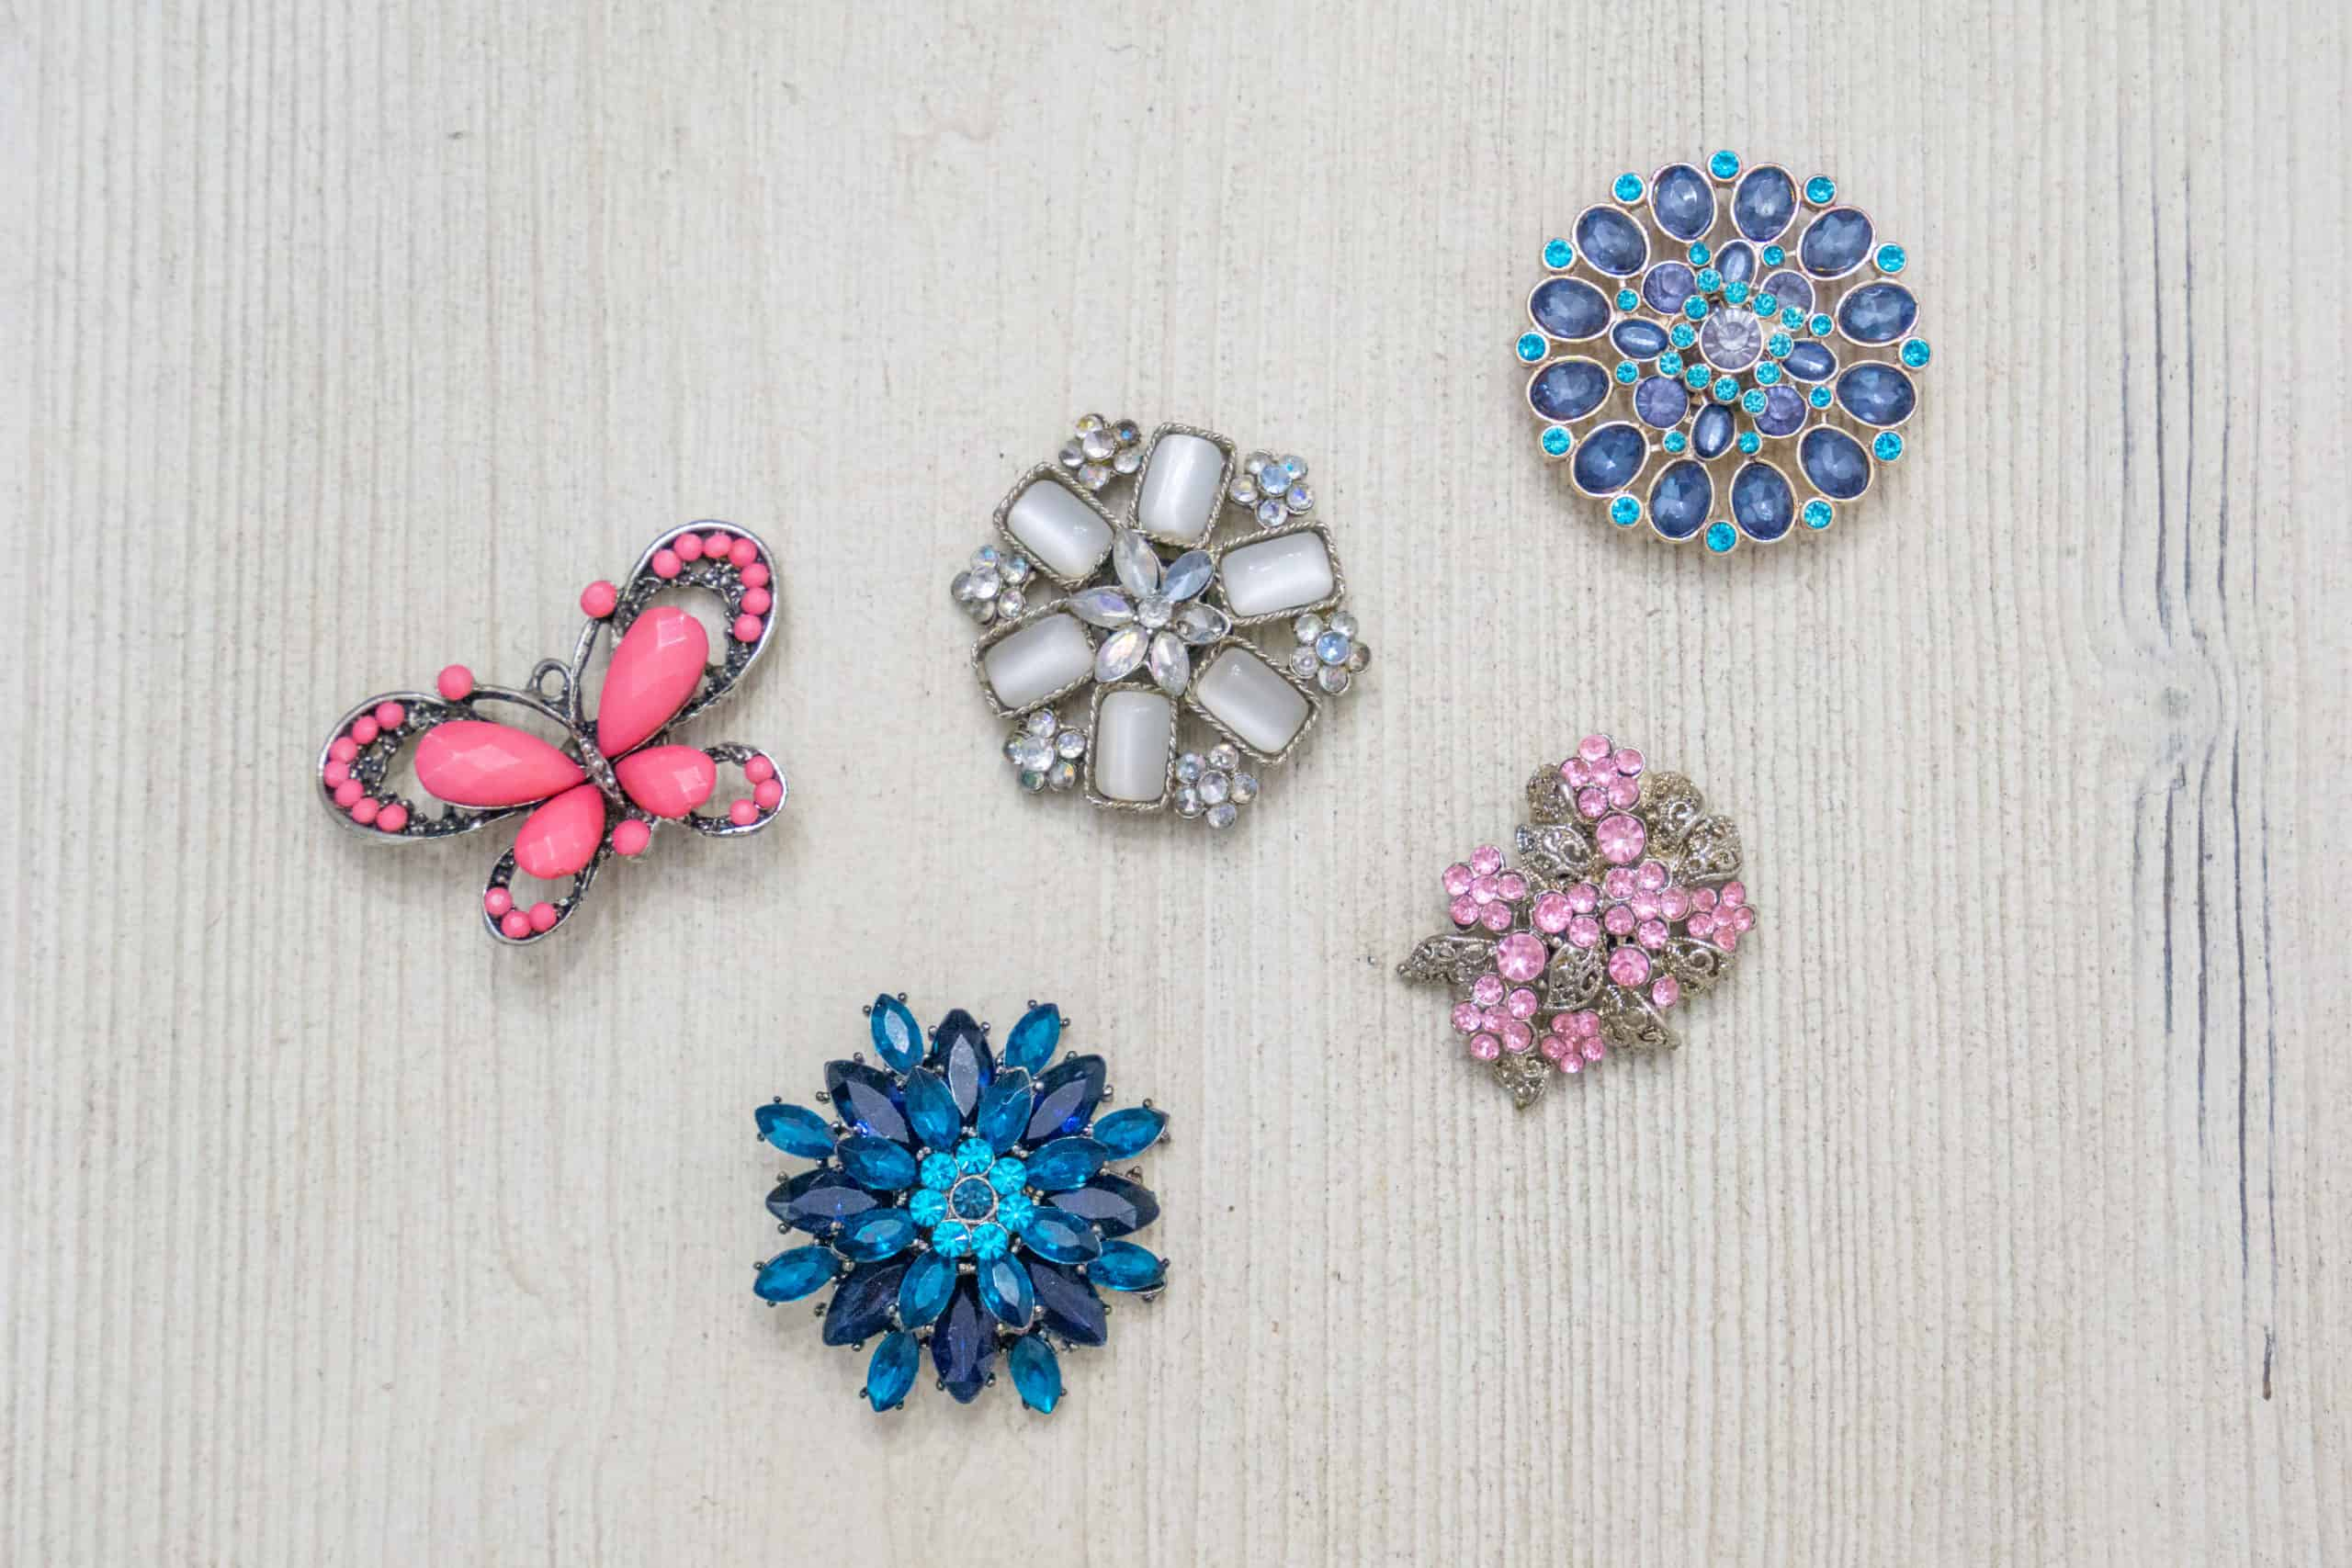 Do you have a bunch of old brooches laying around taking up space? Follow this simple tutorial to turn them into vintage jewelry magnets.